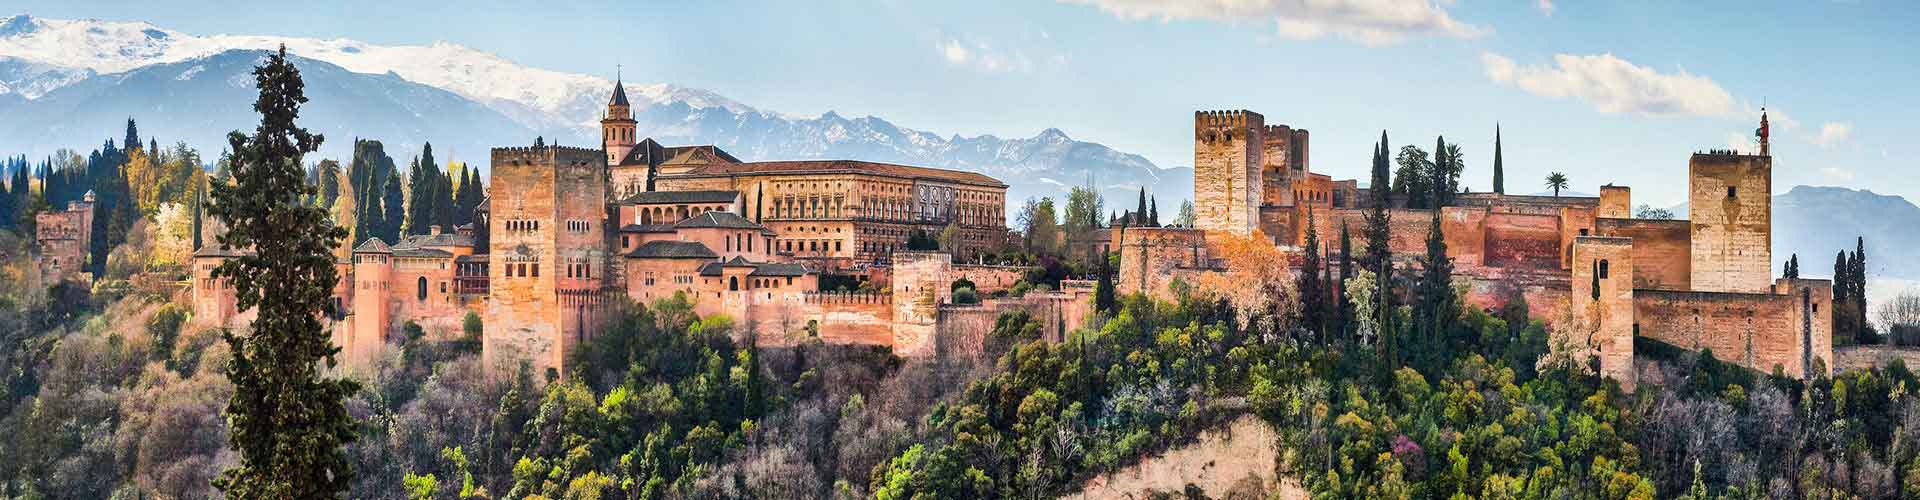 Granada – Hostels in Granada. Maps for Granada, Photos and Reviews for each hostel in Granada.